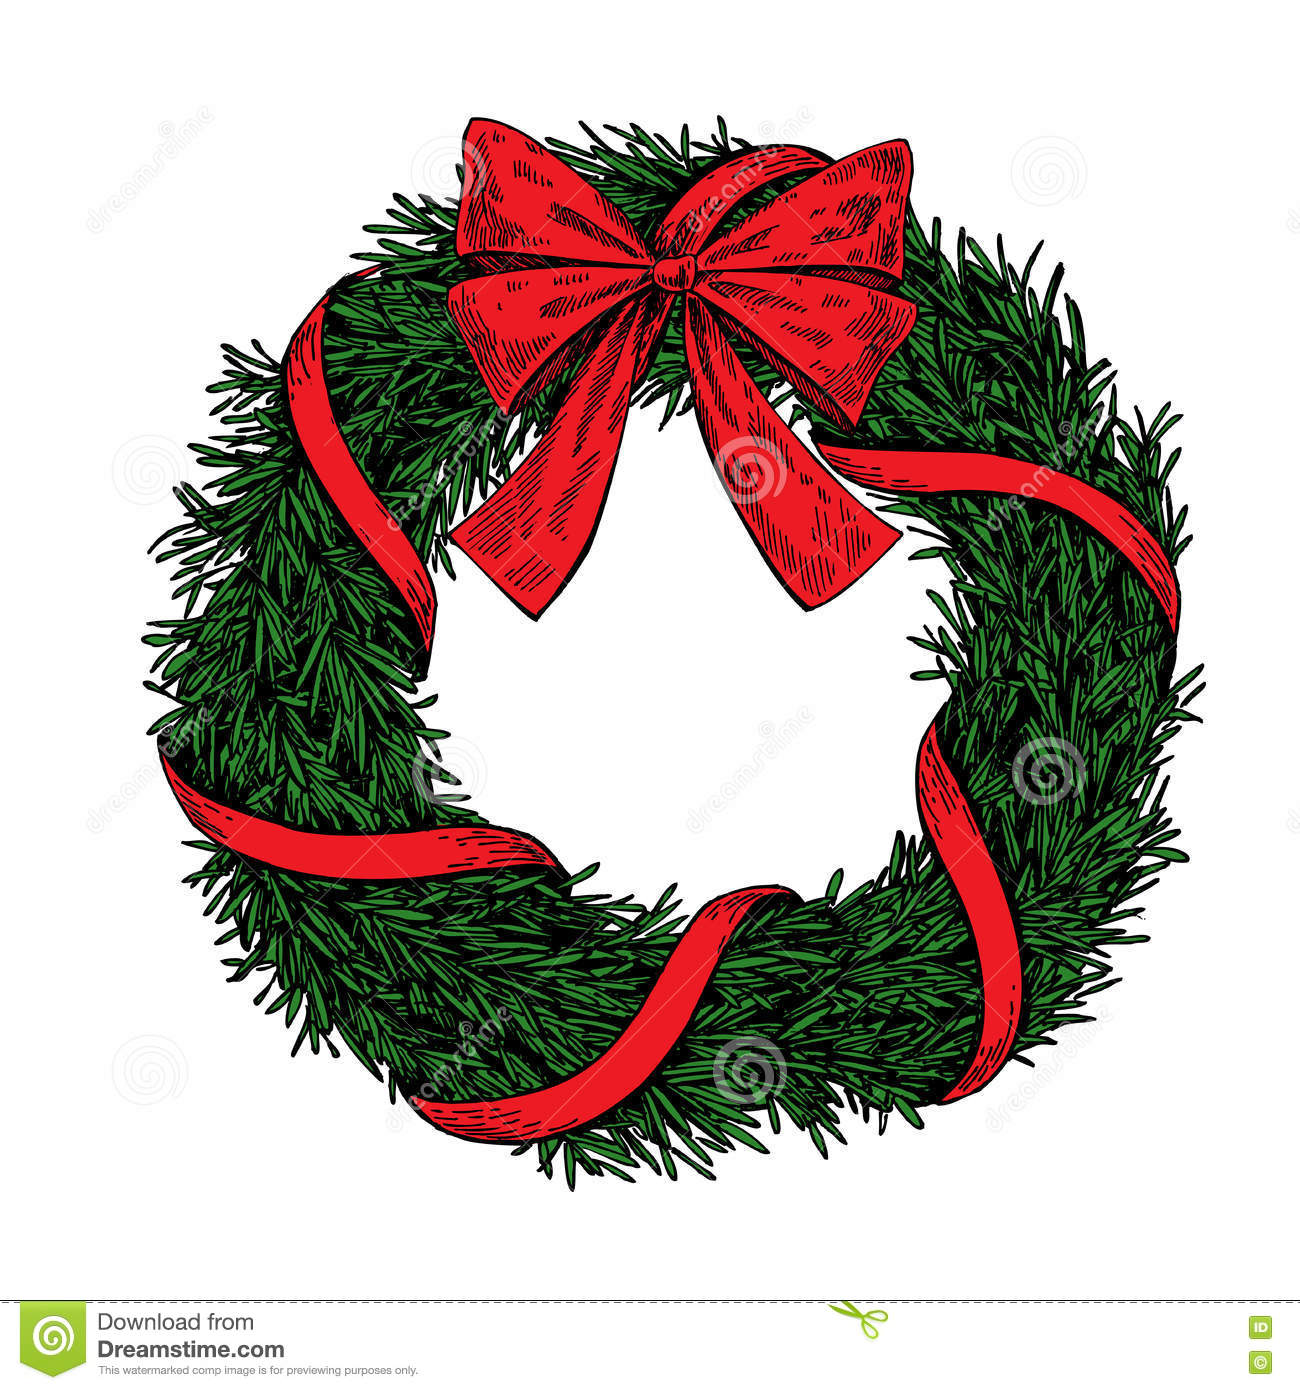 Christmas Wreath Vector.Christmas Wreath Vector Hand Drawn Illustration With Fir